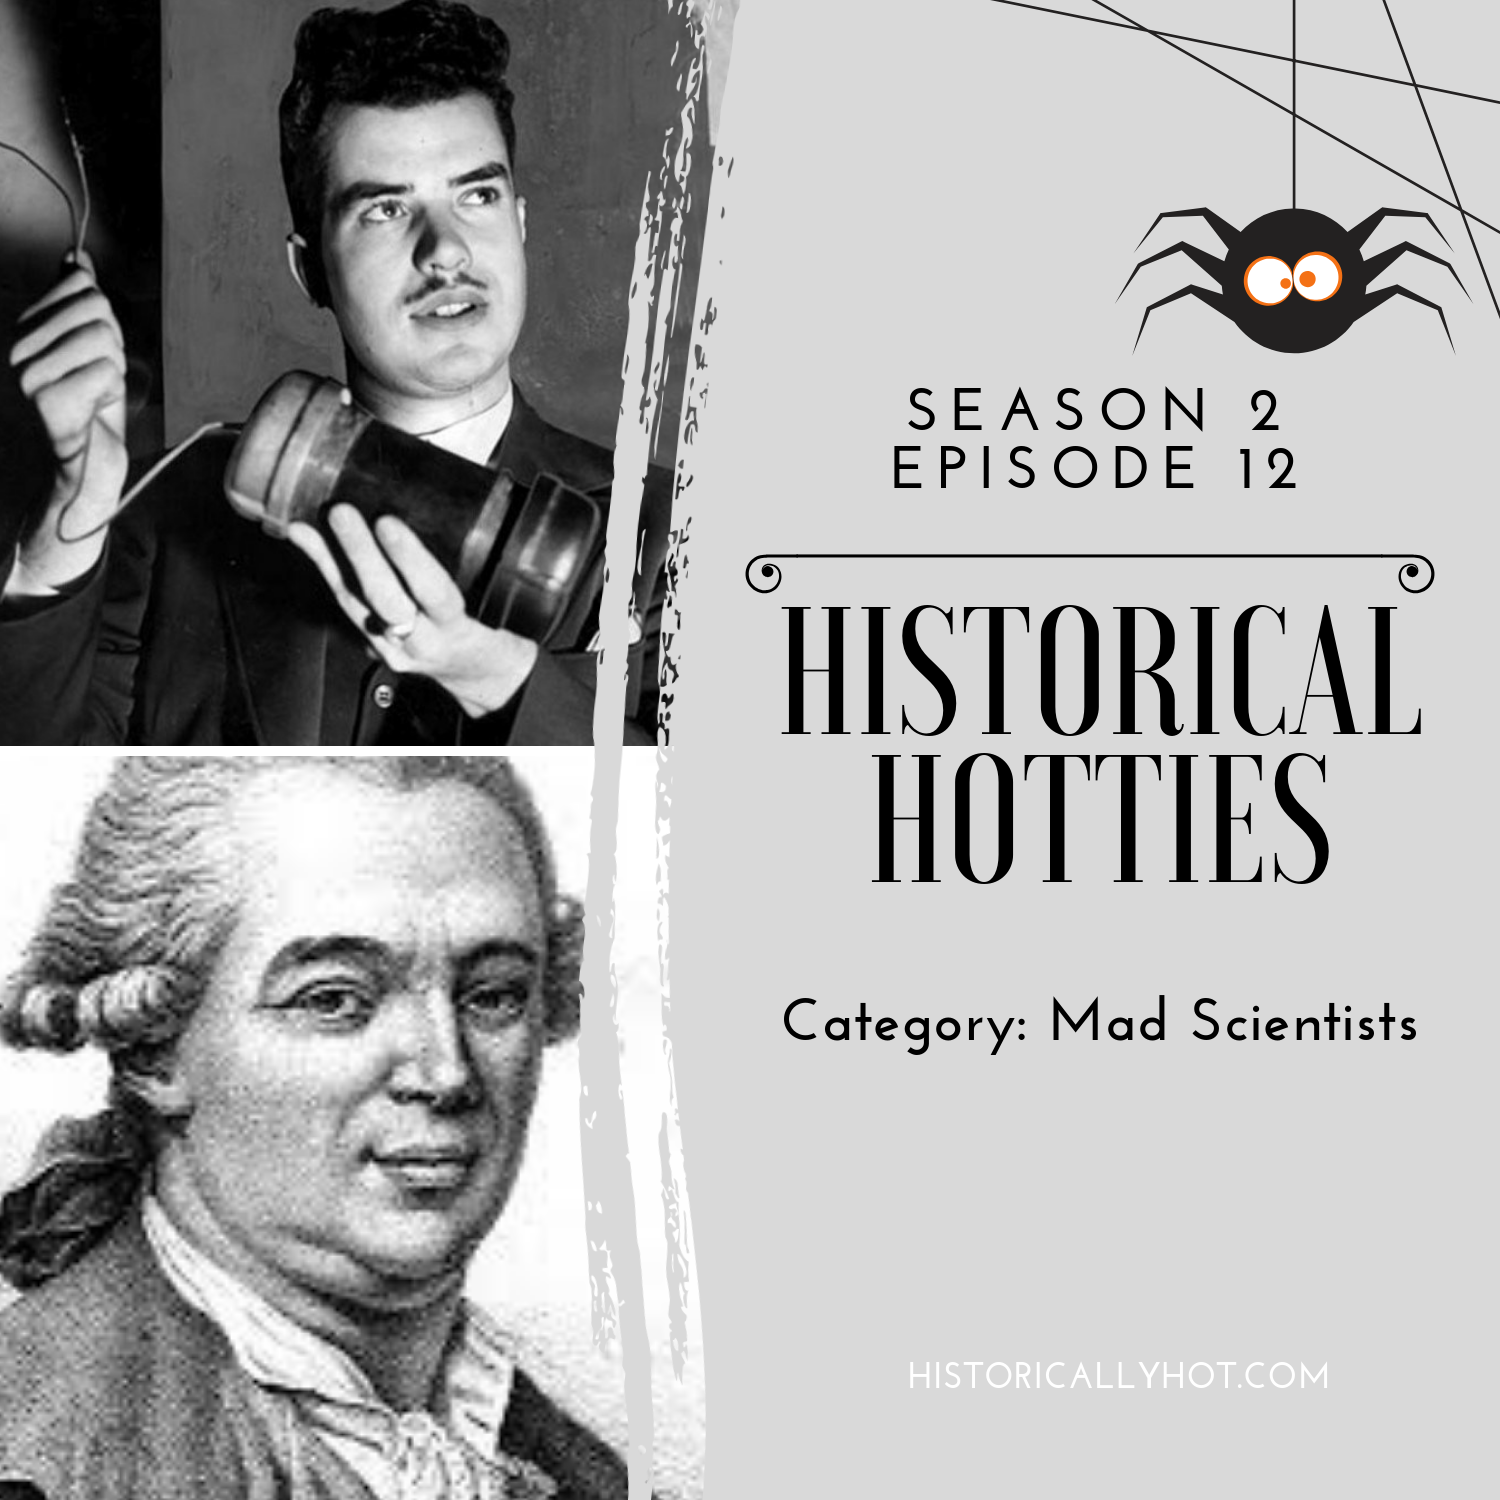 historical hotties mad scientists